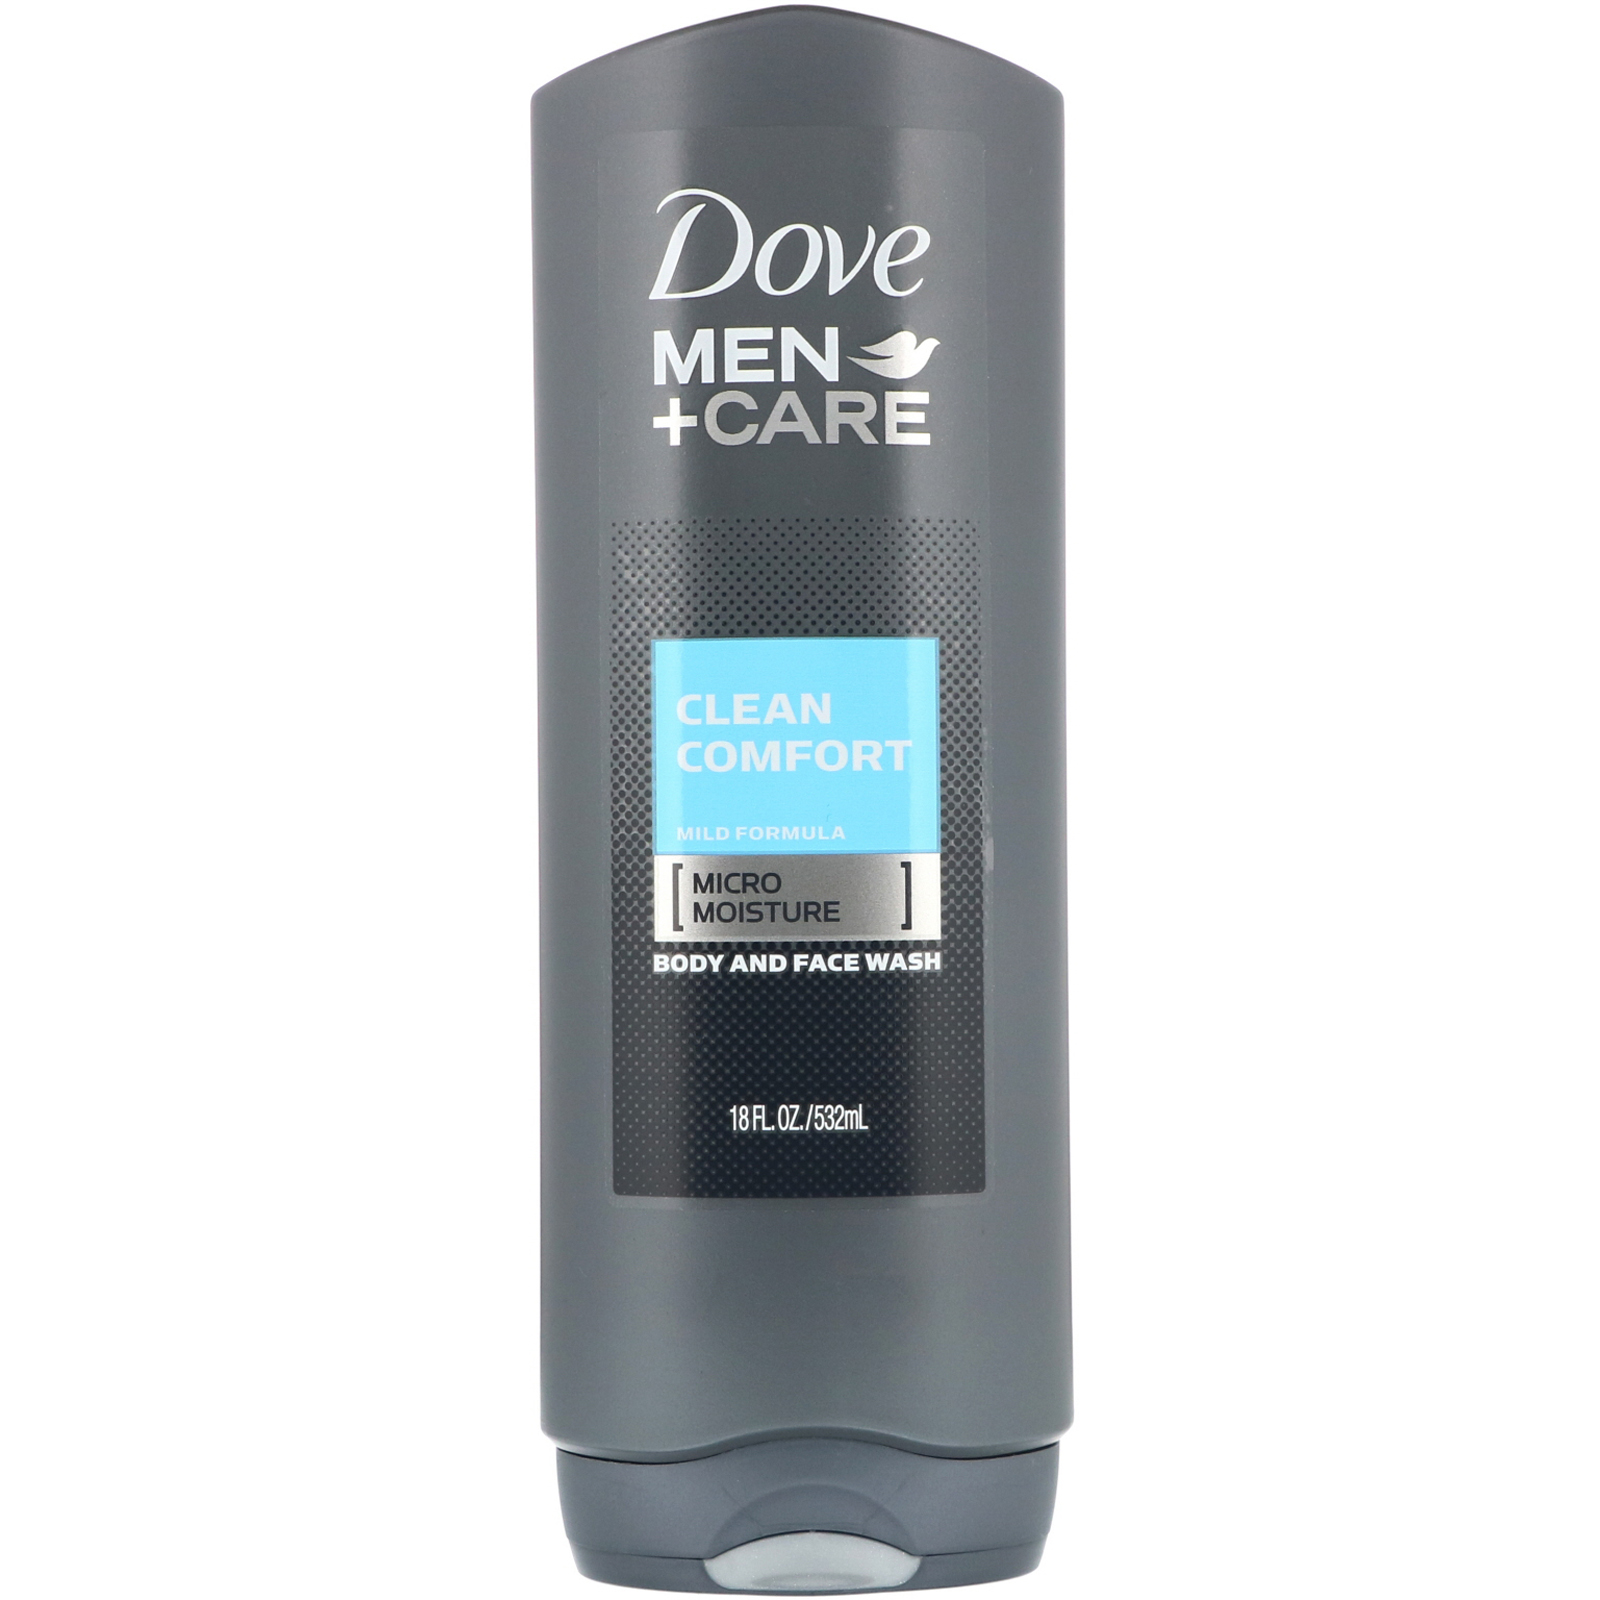 Dove Men Care Clean Comfort Body And Face Wash 18 Fl Oz 532 Ml Iherb